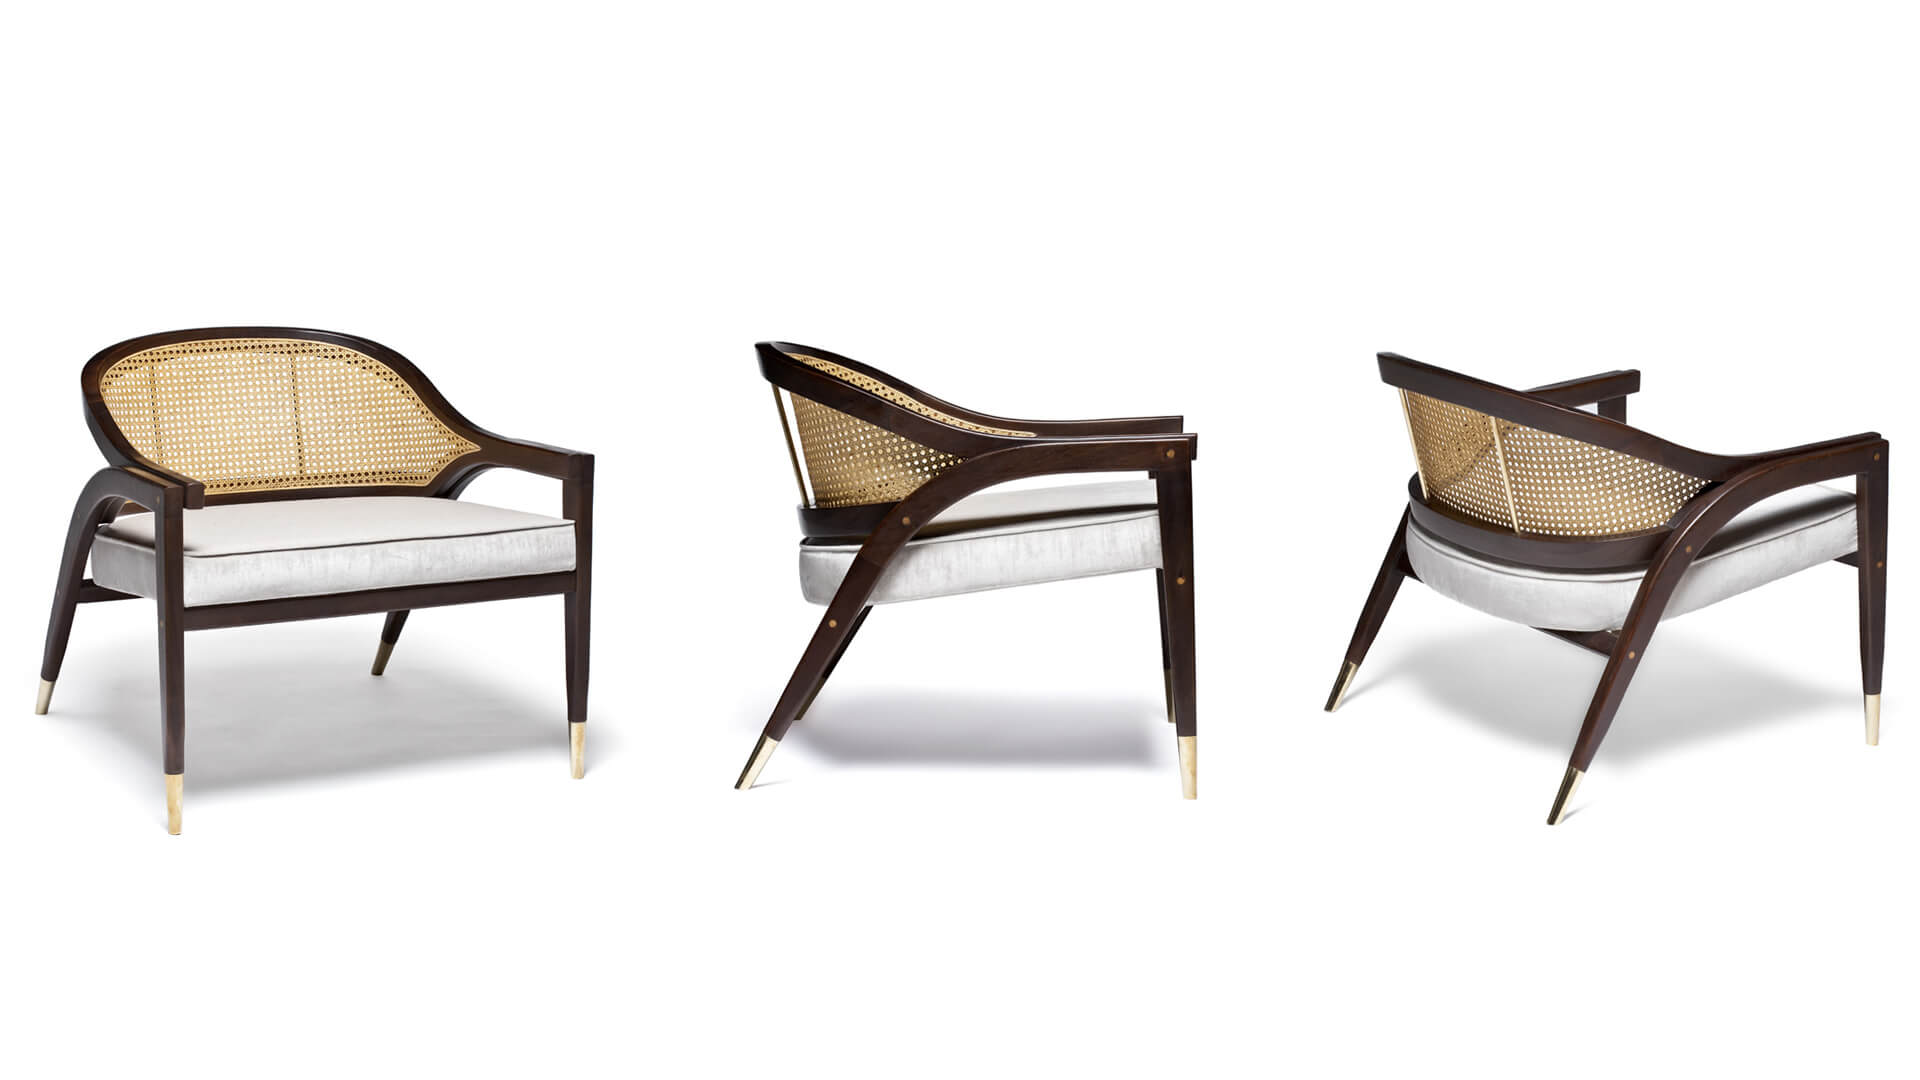 Kassavello - Bespoke Furniture & Luxury Brands